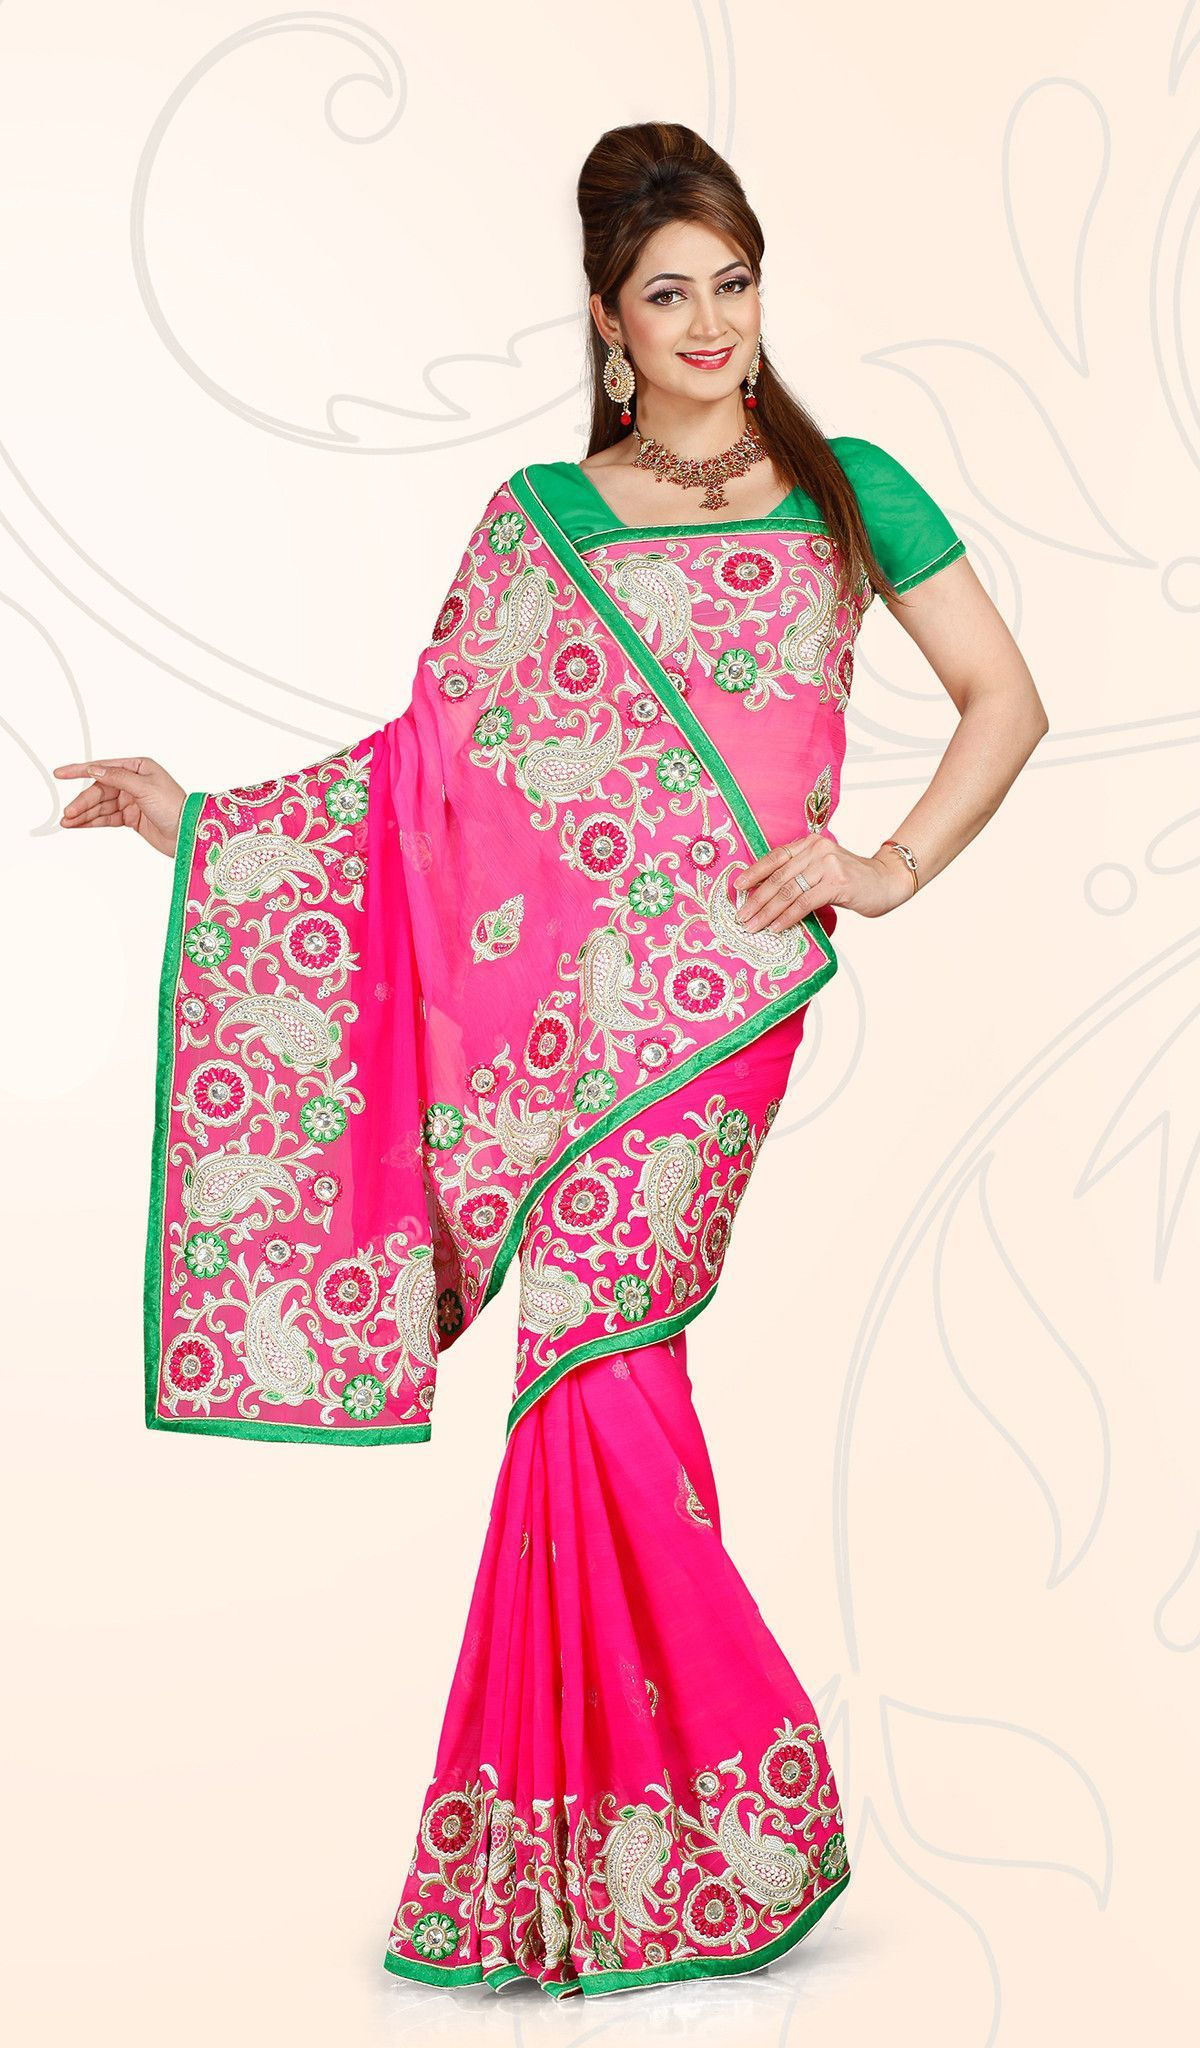 Heavy Embroidered Pink Saree | Products | Pinterest | Pink saree and ...